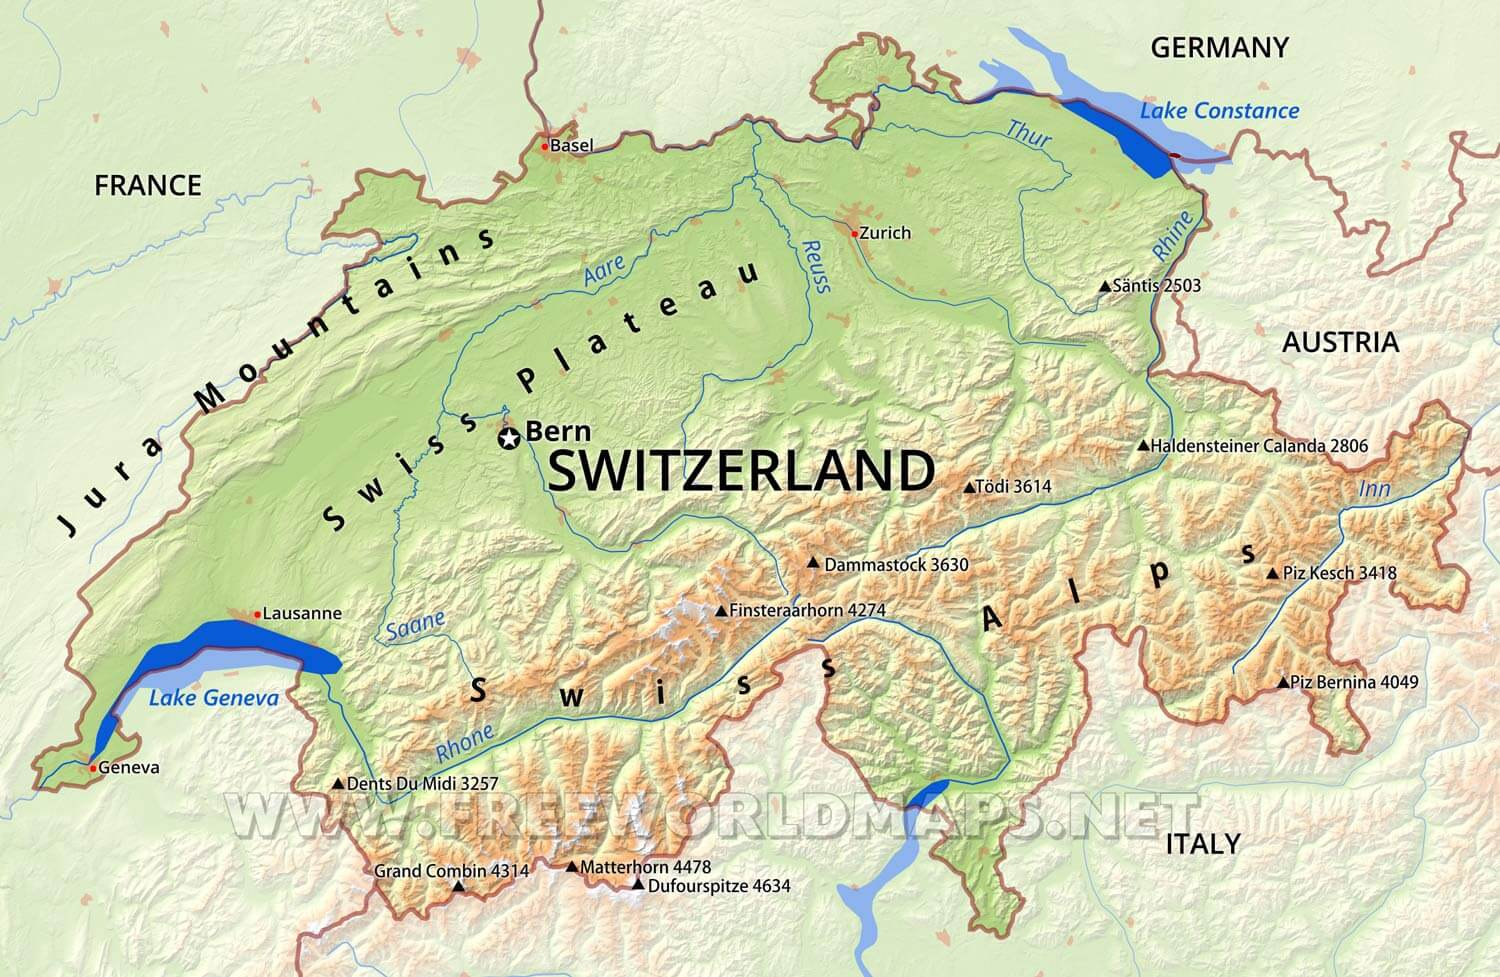 climate-change-has-added-over-1000-lakes-in-swiss-alps-study